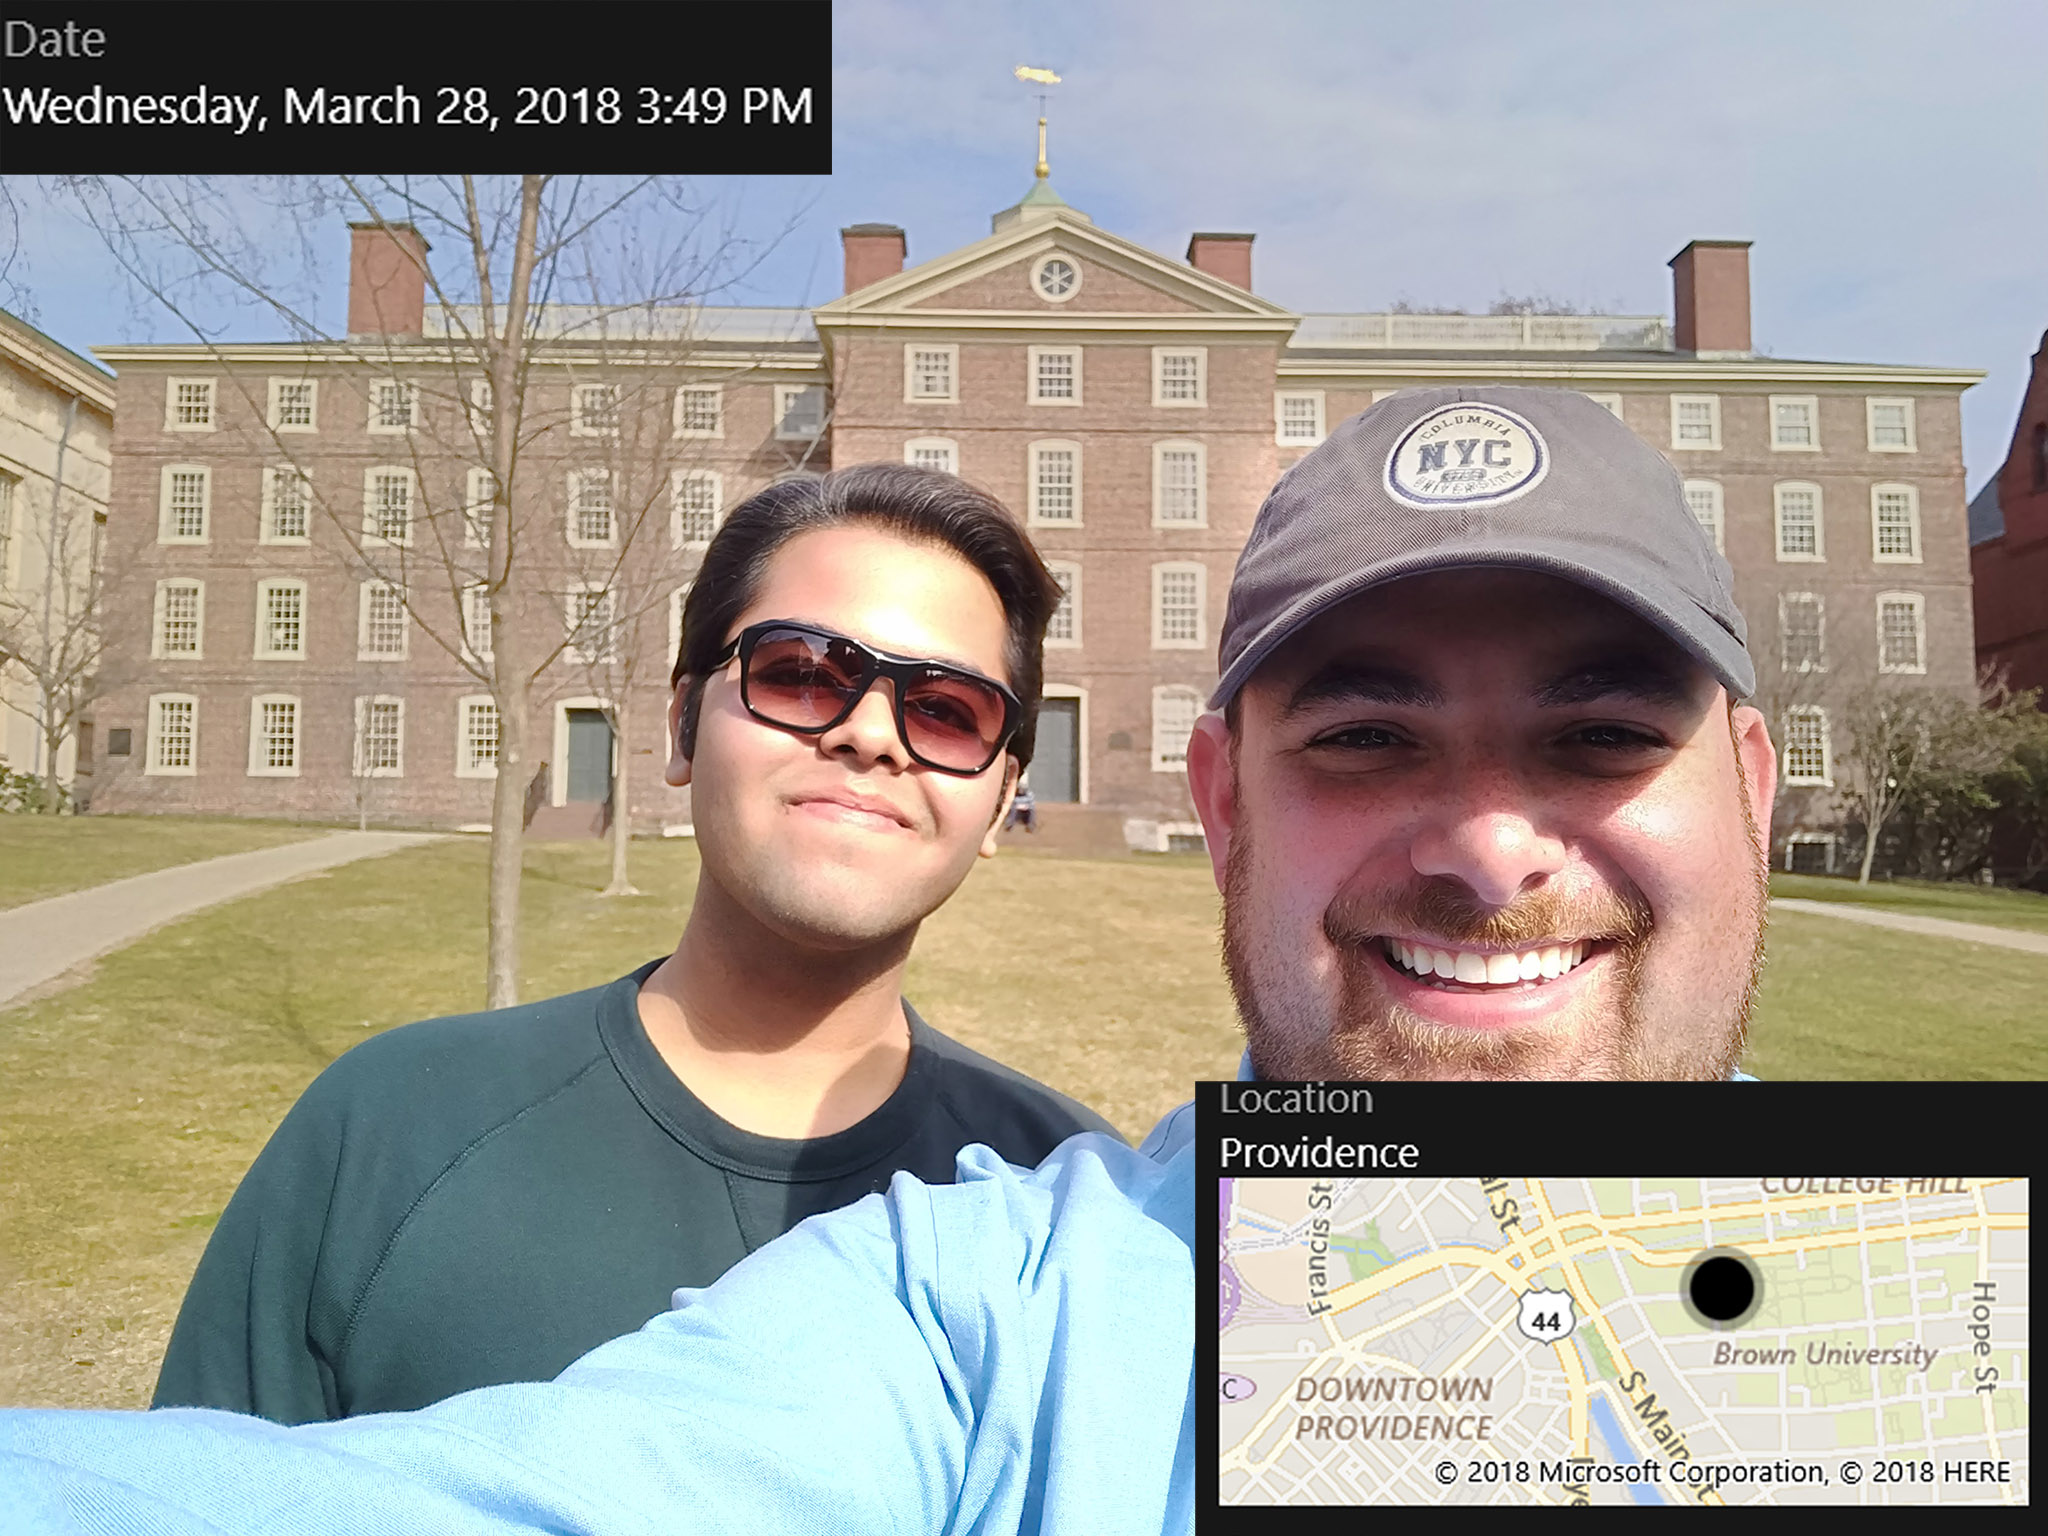 Ben and Mohak reached Brown at 3:49pm, just 19 minutes behind schedule!.So far, so good! In the background is University Hall, the oldest building at Brown, constructed in 1770.